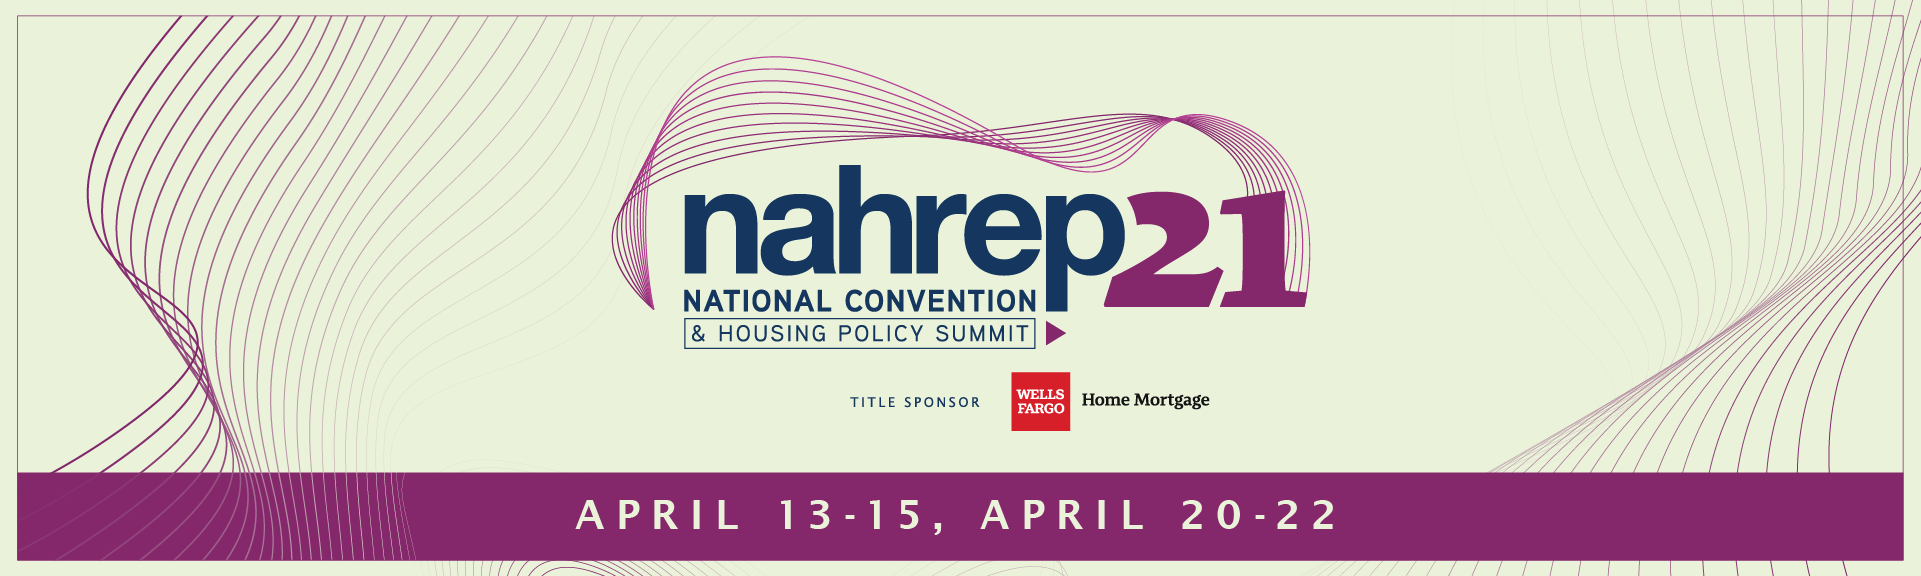 2021 National Convention & Housing Policy Summit